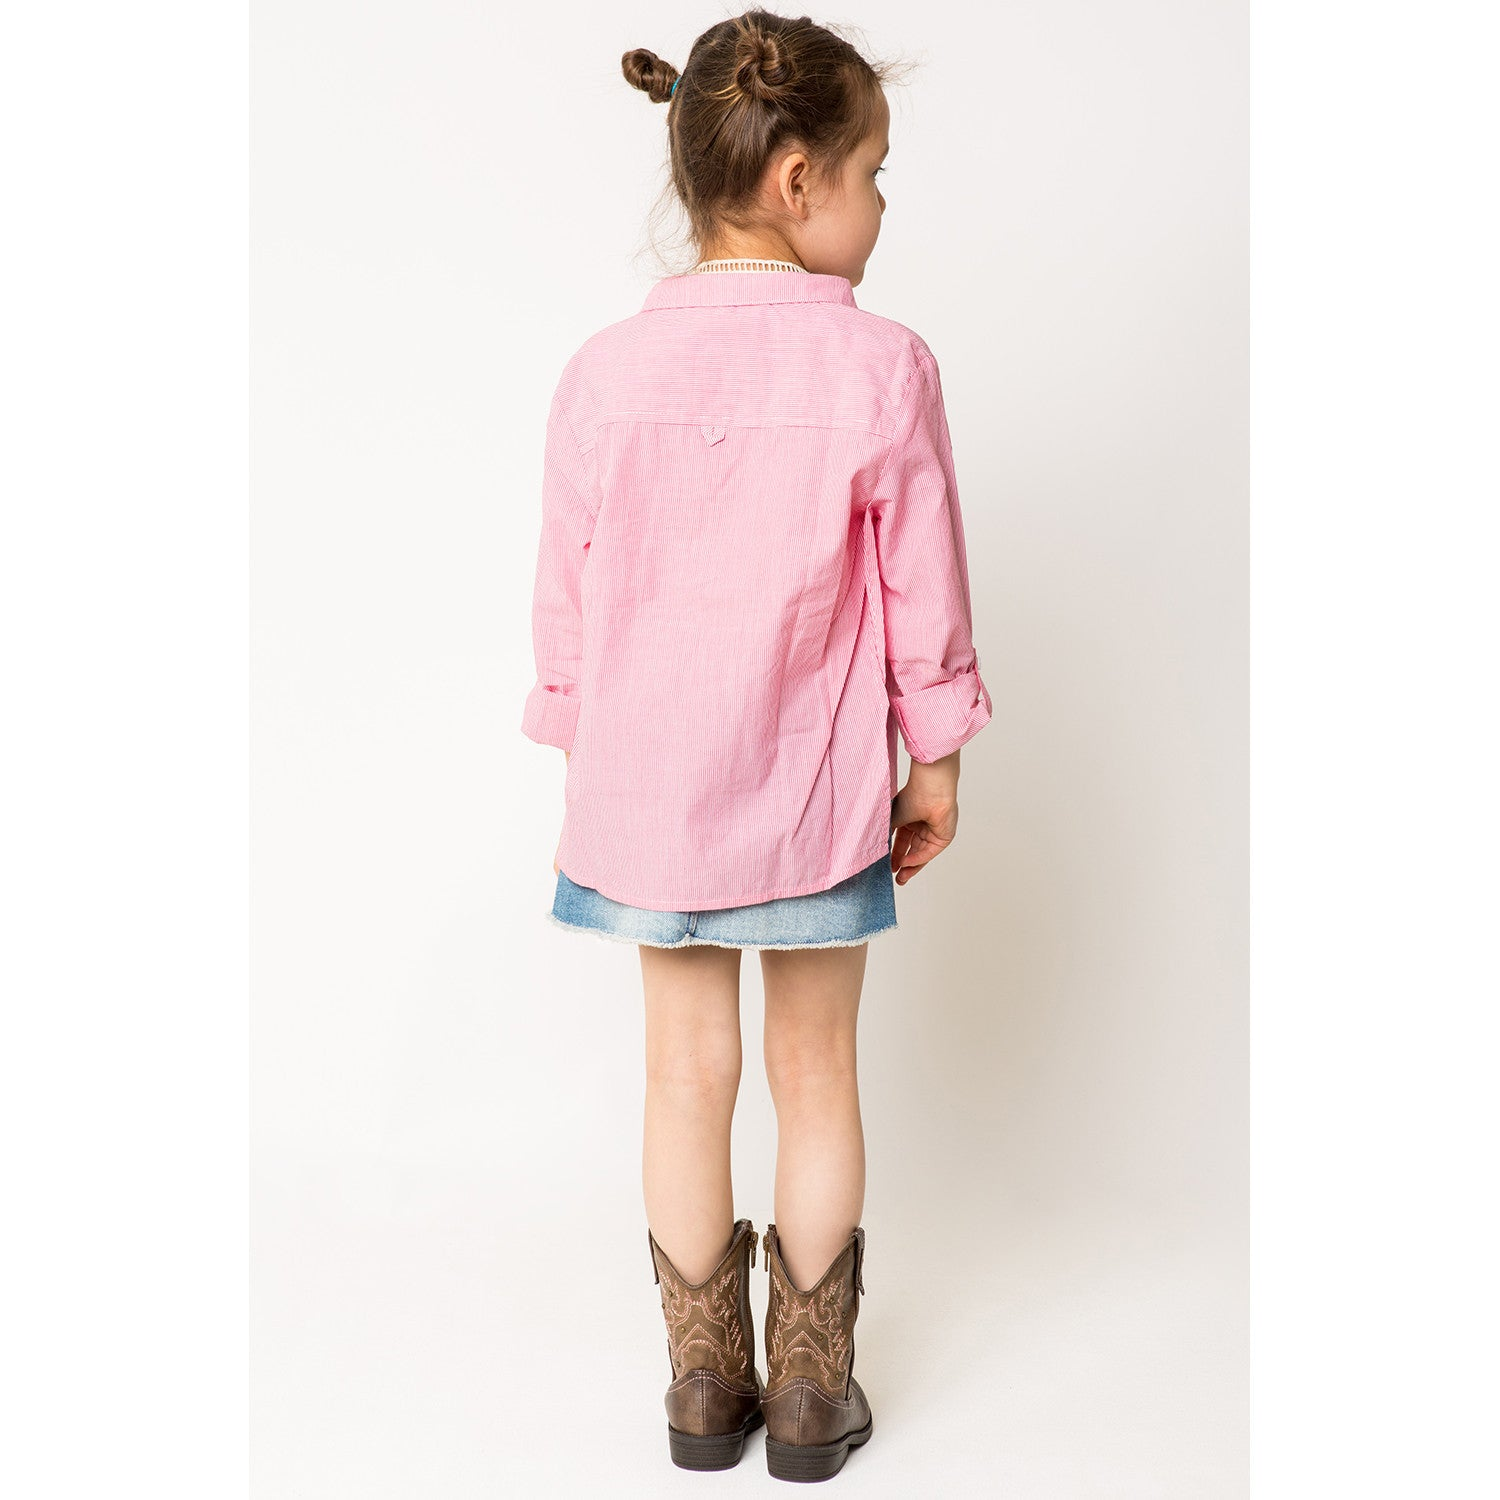 Floral Embroidery Collar Shirt w/ Side Slit for Girls